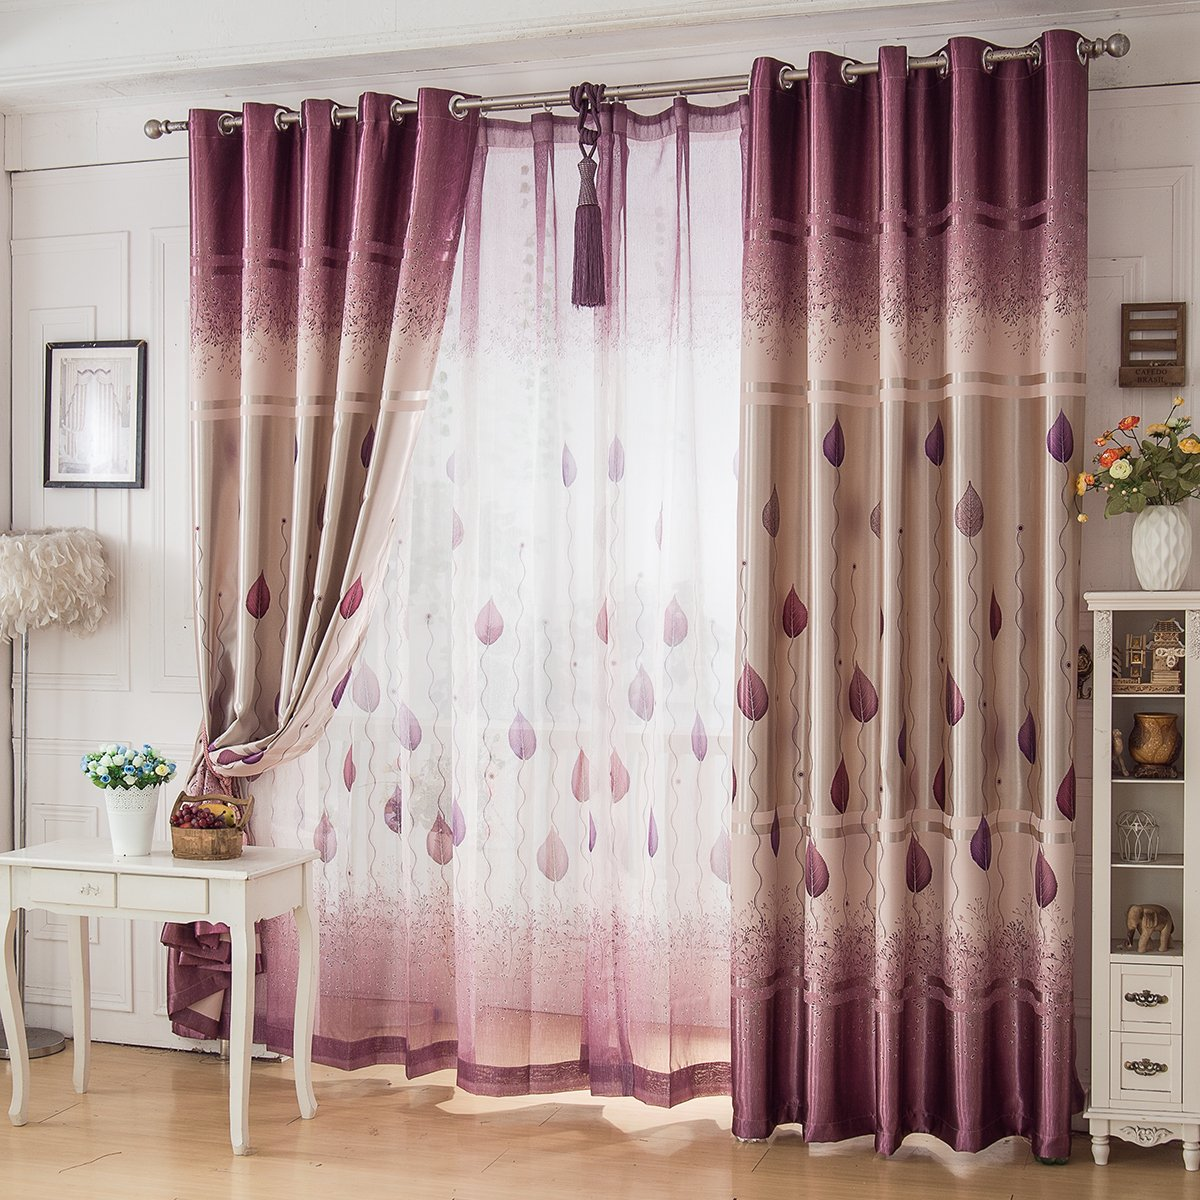 Purple Leaves Curtains For Bedroom Living Room Custom Elegent Blackout Cloth Fabric Cortinas